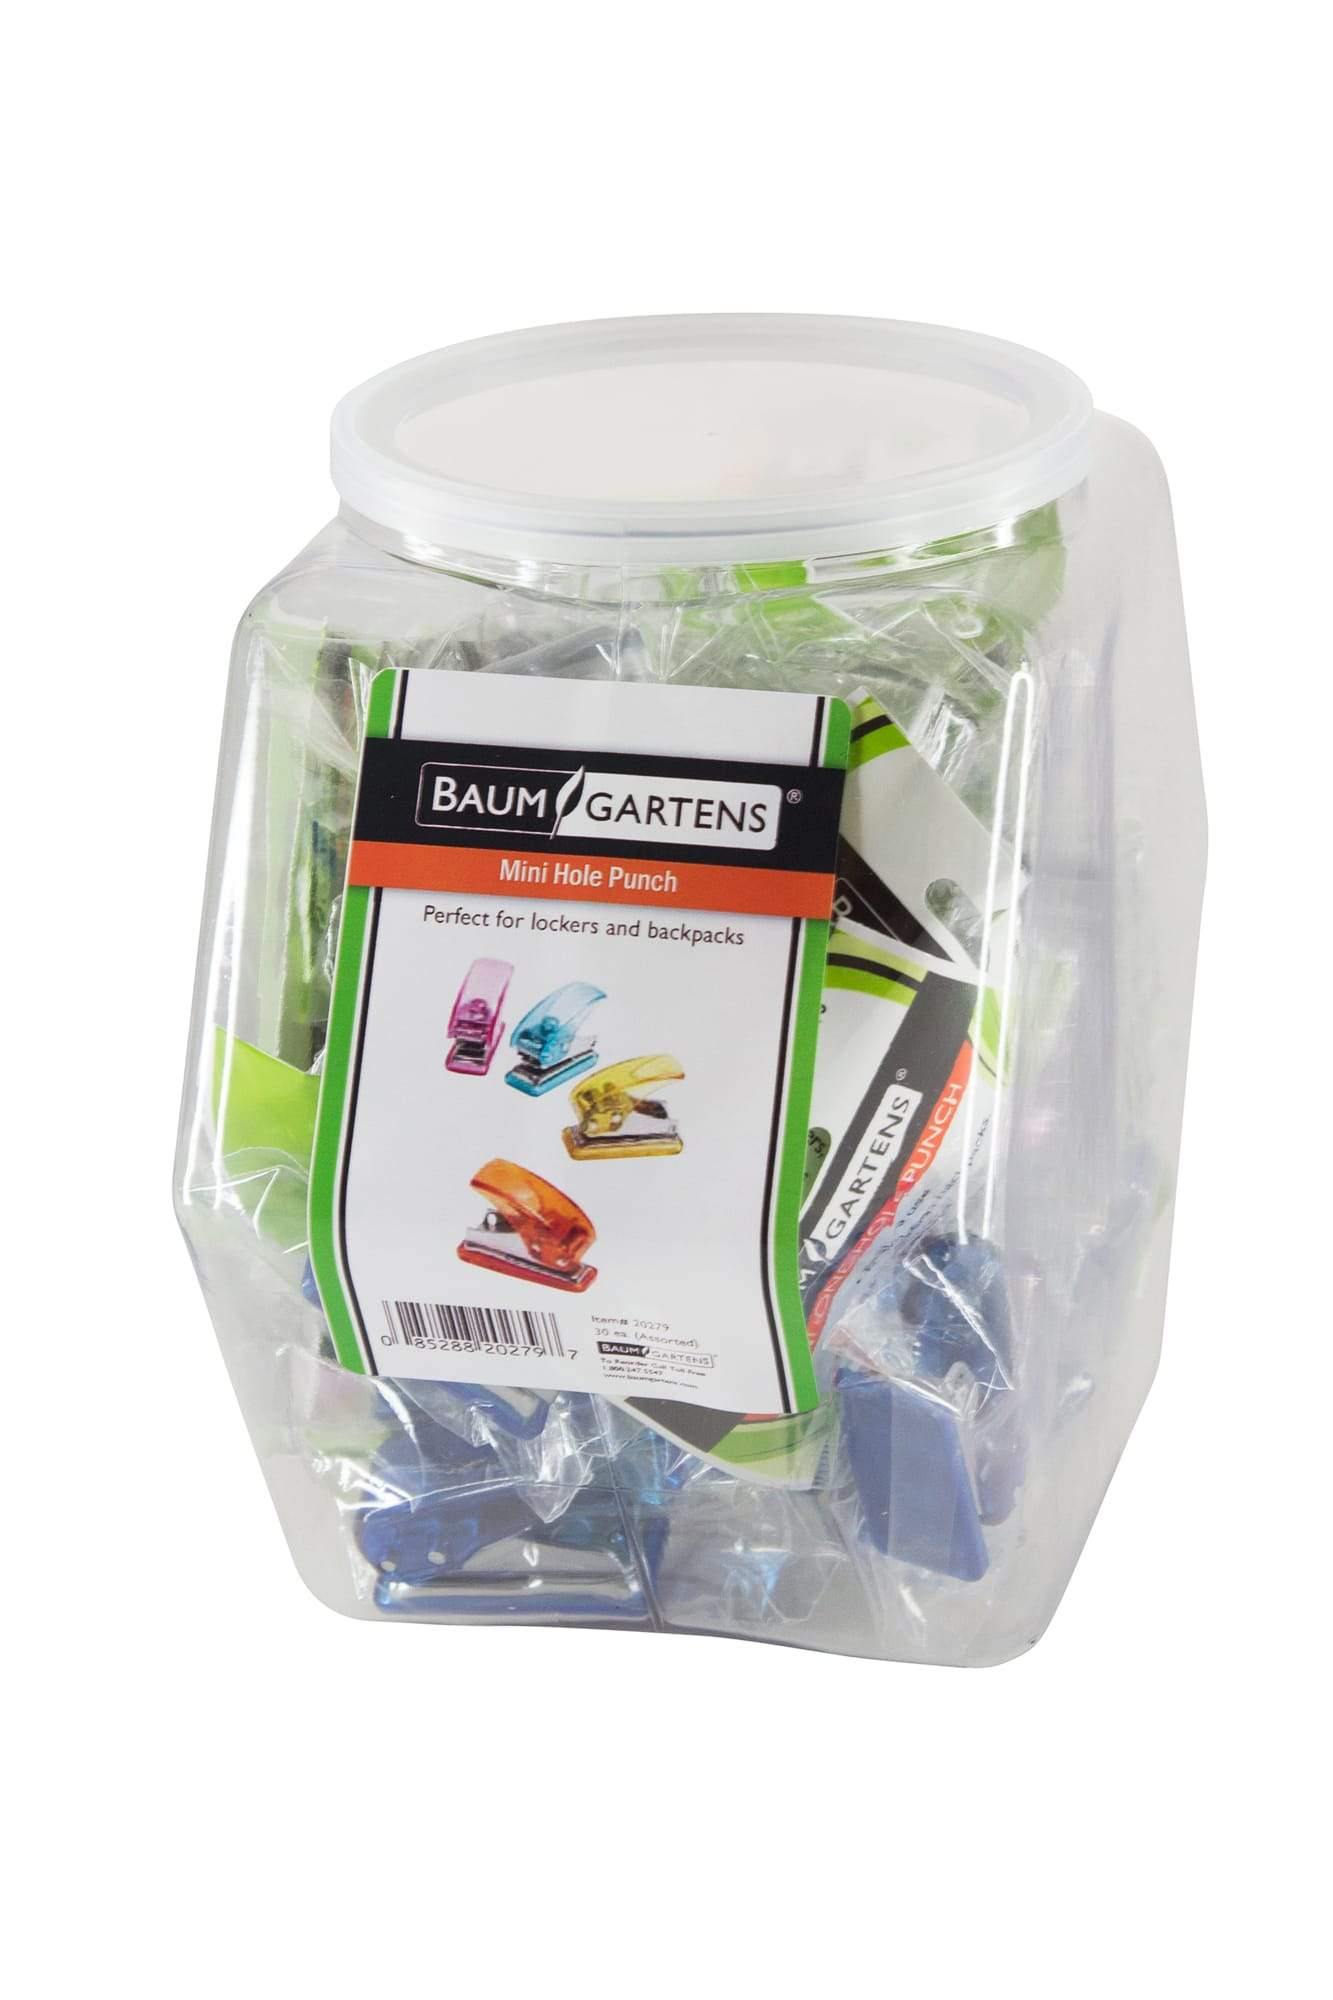 Baumgartens Mini Hole Punch Hexagonal Tub Display of 30 ASSORTED Colors (20279)